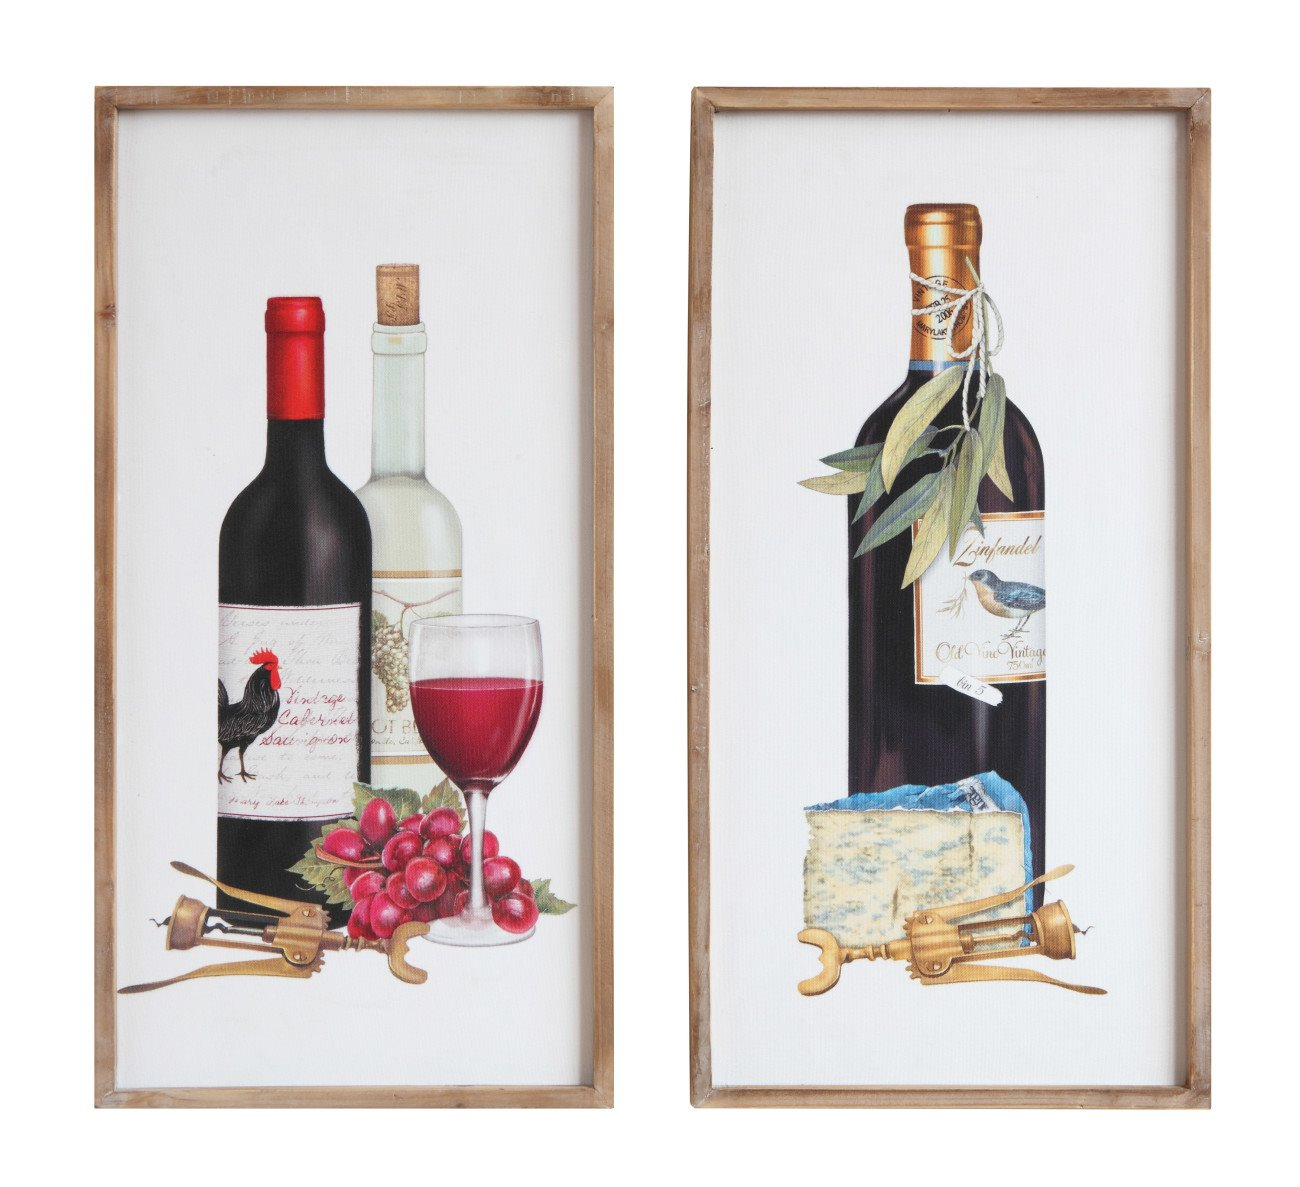 Wine Image Wood Framed Wall Décor (Set of 2 Designs)